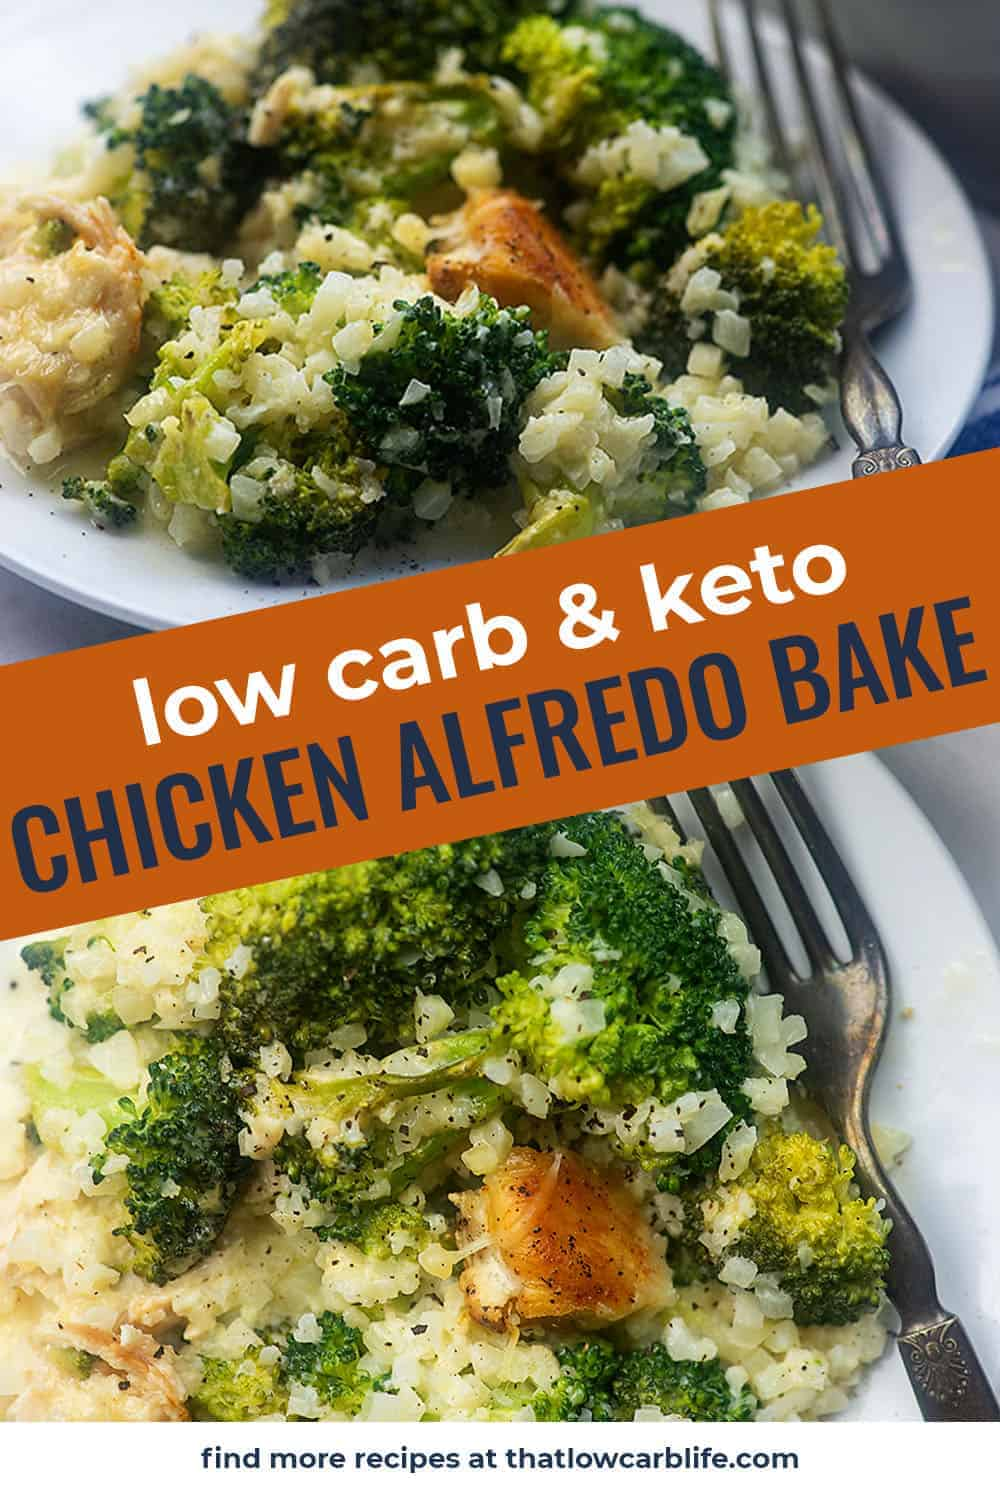 Keto Chicken Alfredo Casserole! This recipe is popular with my whole family -everyone loves Alfredo! #keto #lowcarb #chicken #casserole